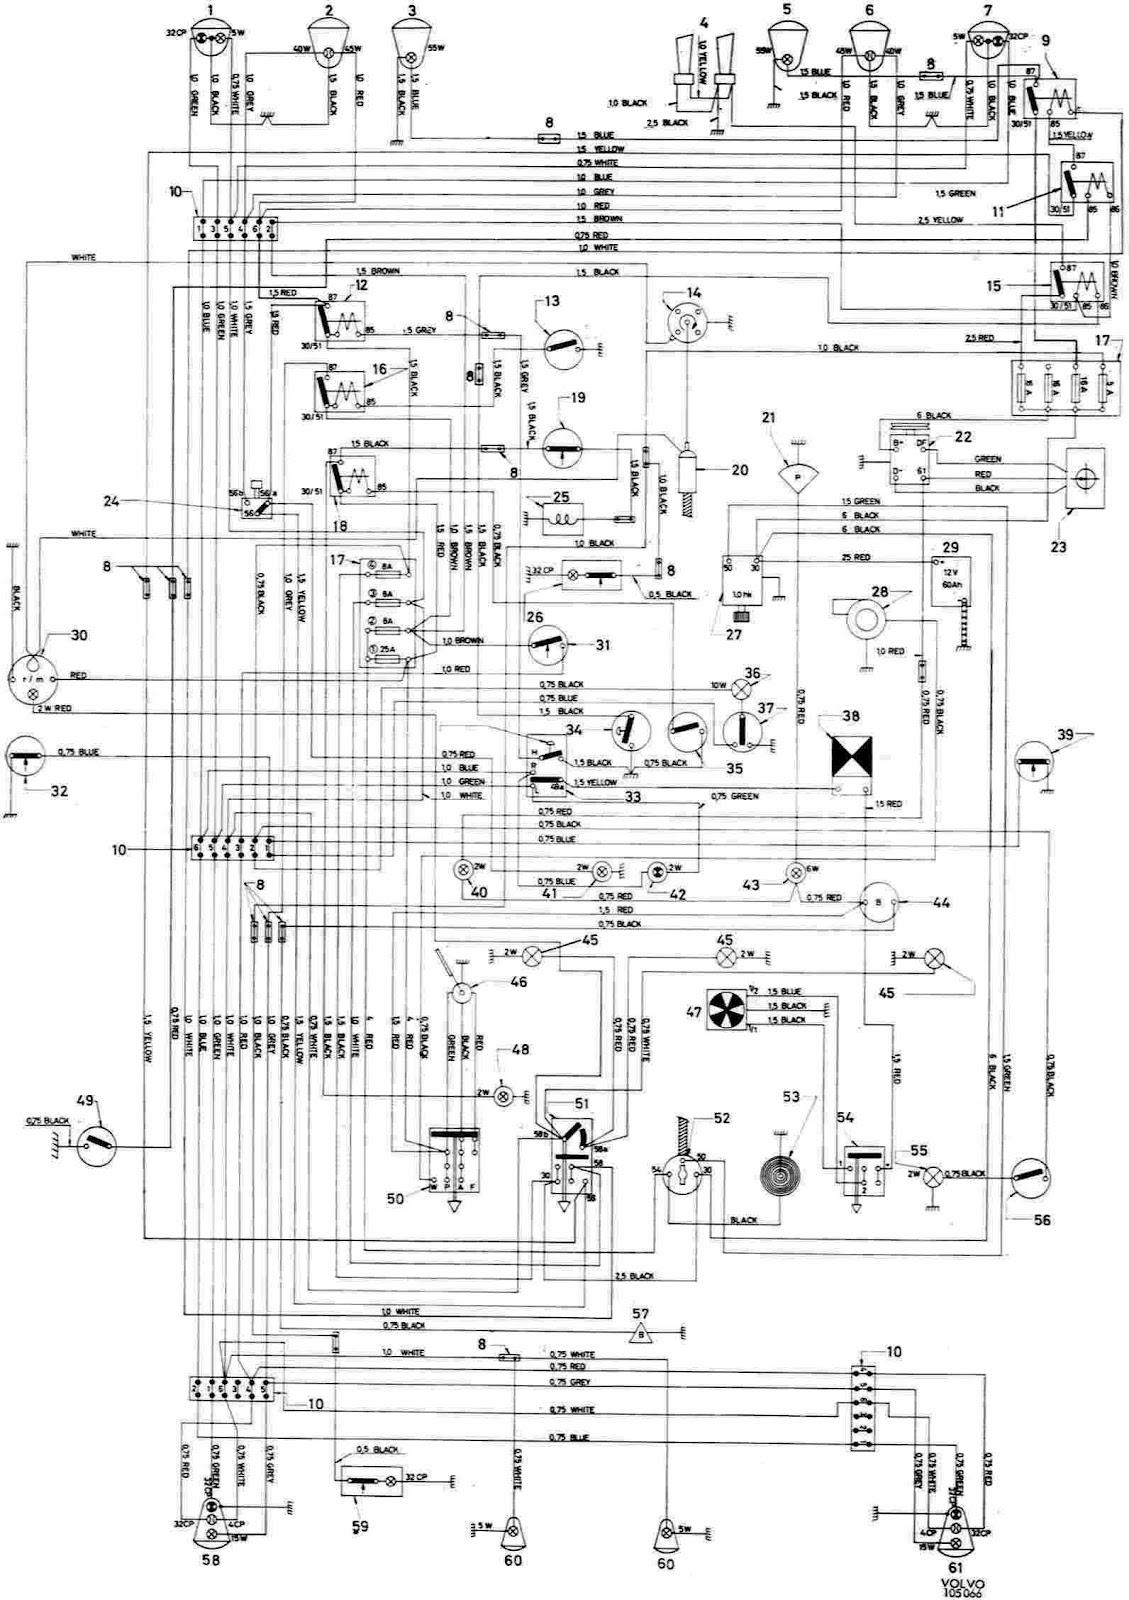 Volvo+123+GT+Complete+Wiring+Diagram 2005 volvo s40 wiring diagram volvo s40 steering diagram \u2022 wiring  at crackthecode.co